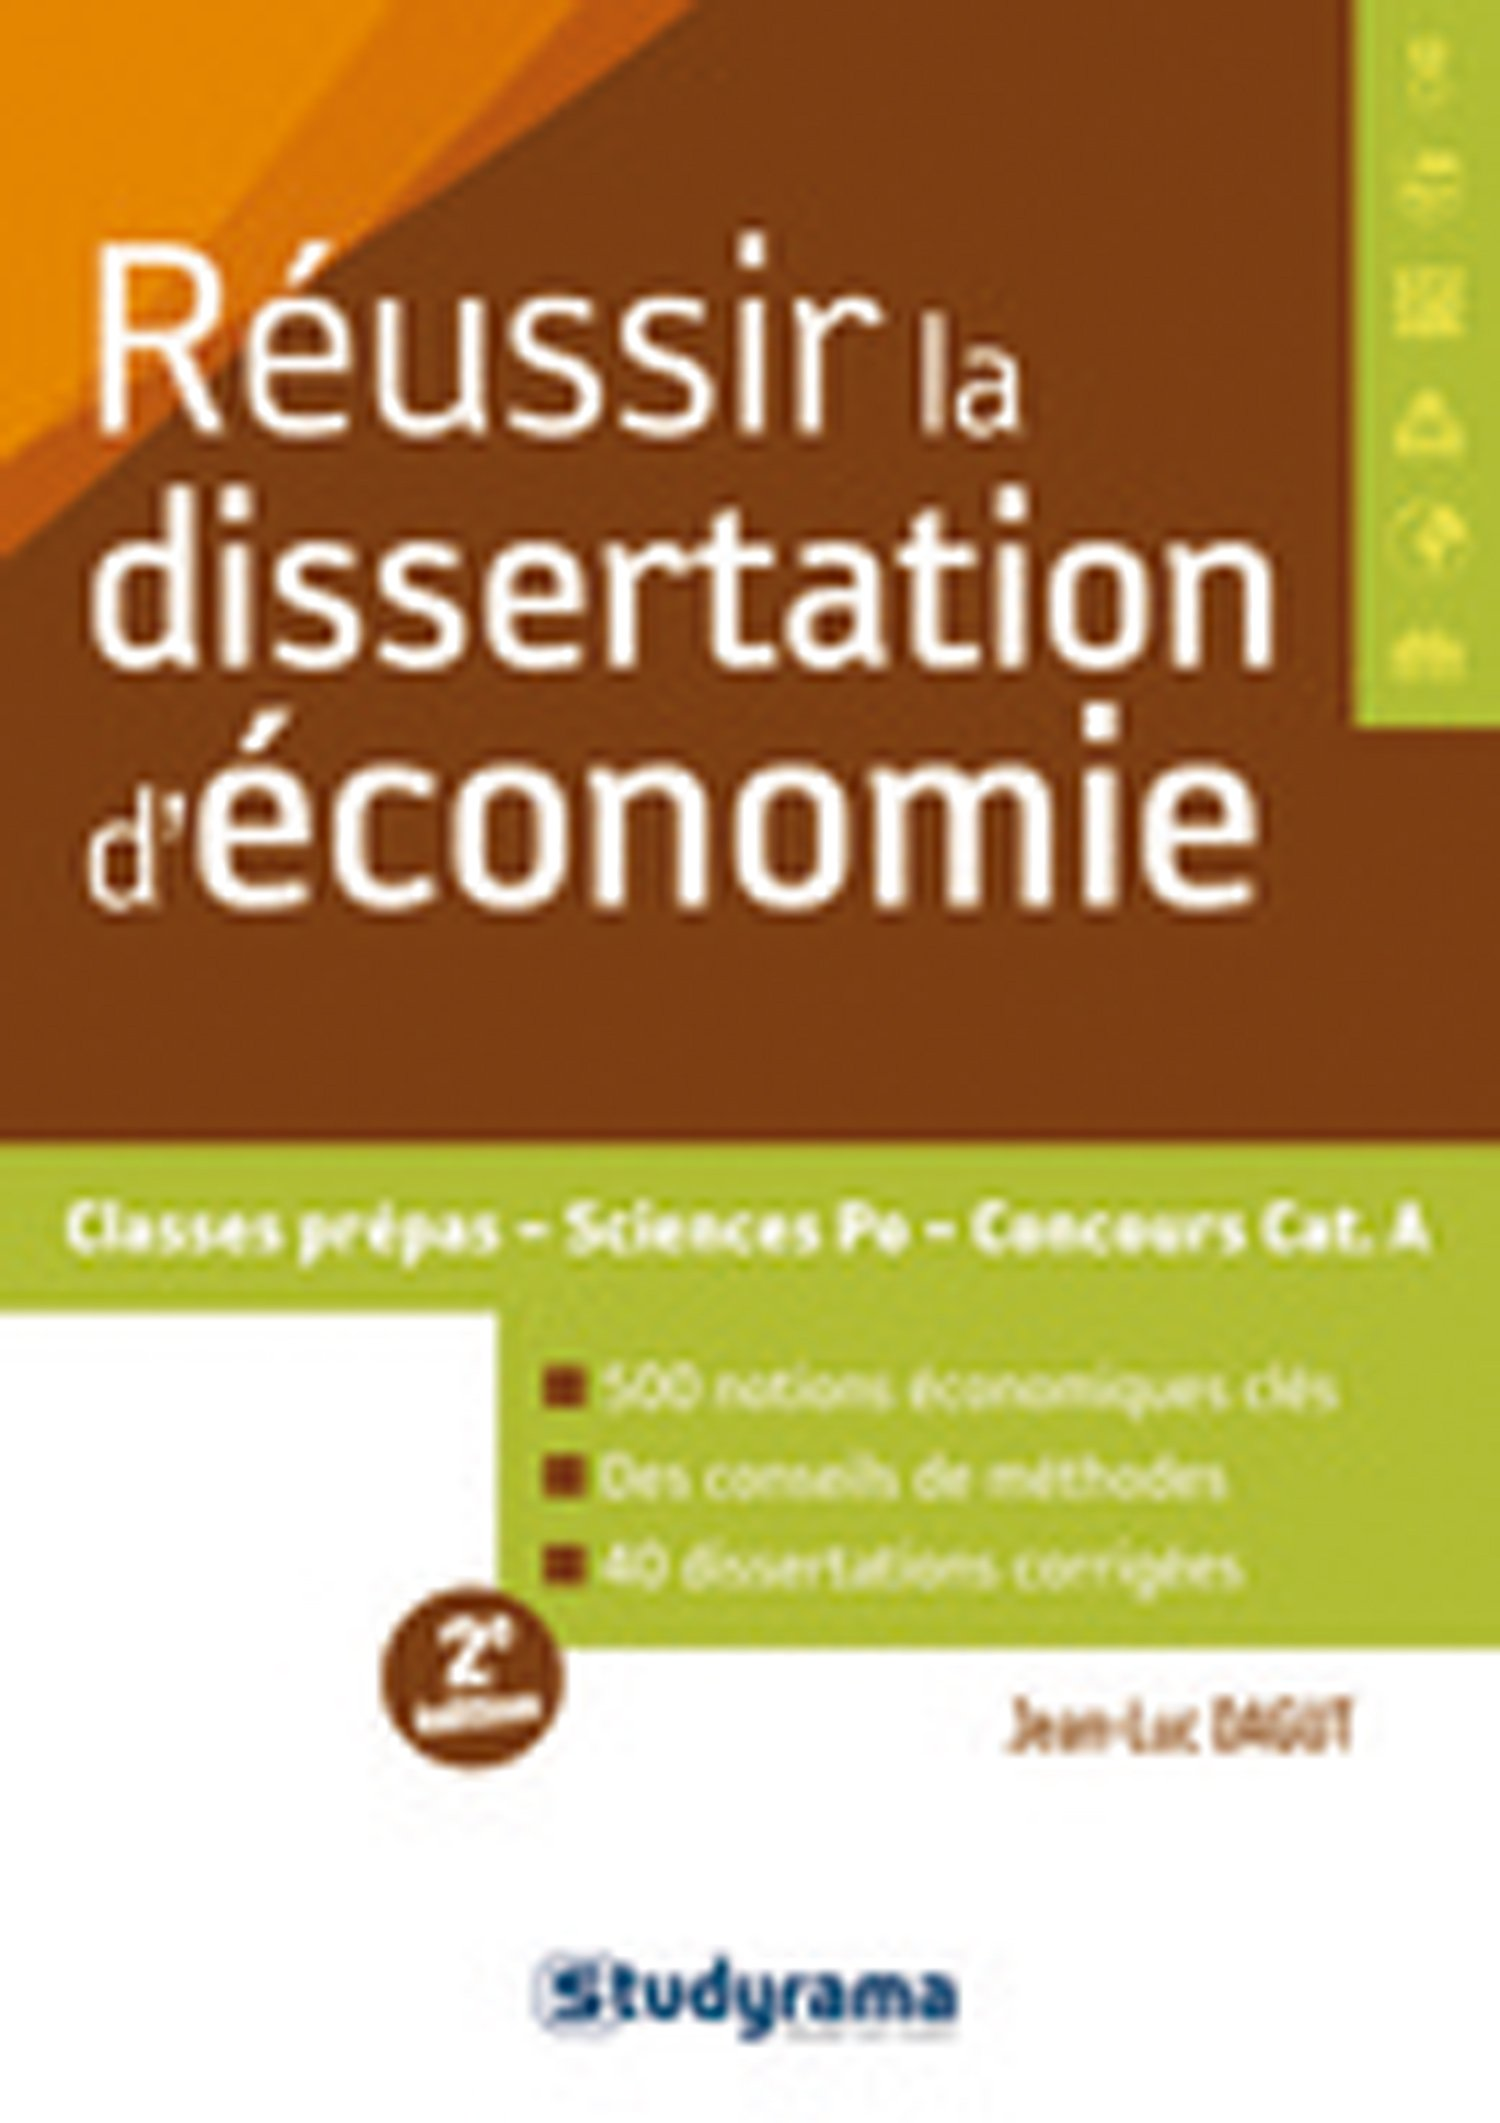 dissertation offre de contracter This collection contains dissertations and theses produced by masters and doctoral students at the university of illinois at urbana-champaign if you are a graduate.